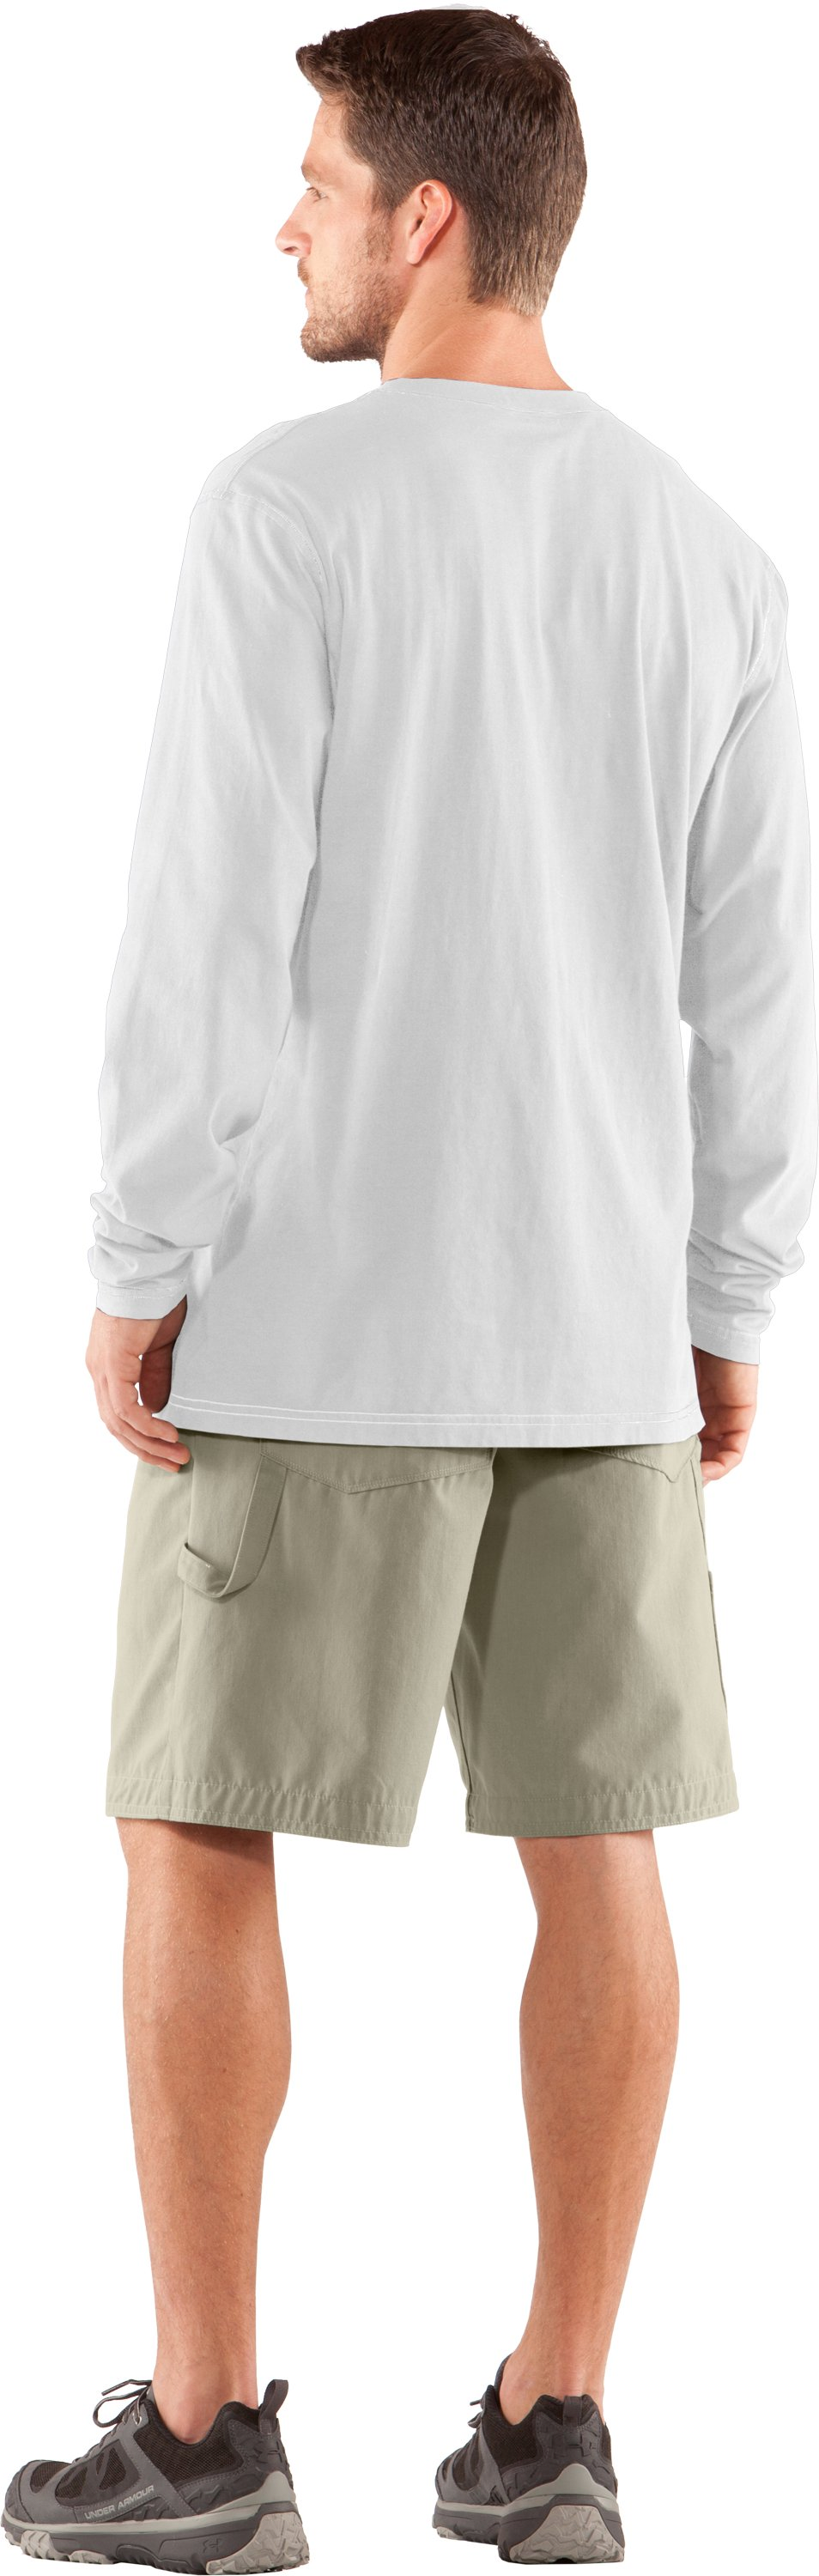 Men's Charged Cotton® Pocket Long Sleeve T-Shirt, White, Back